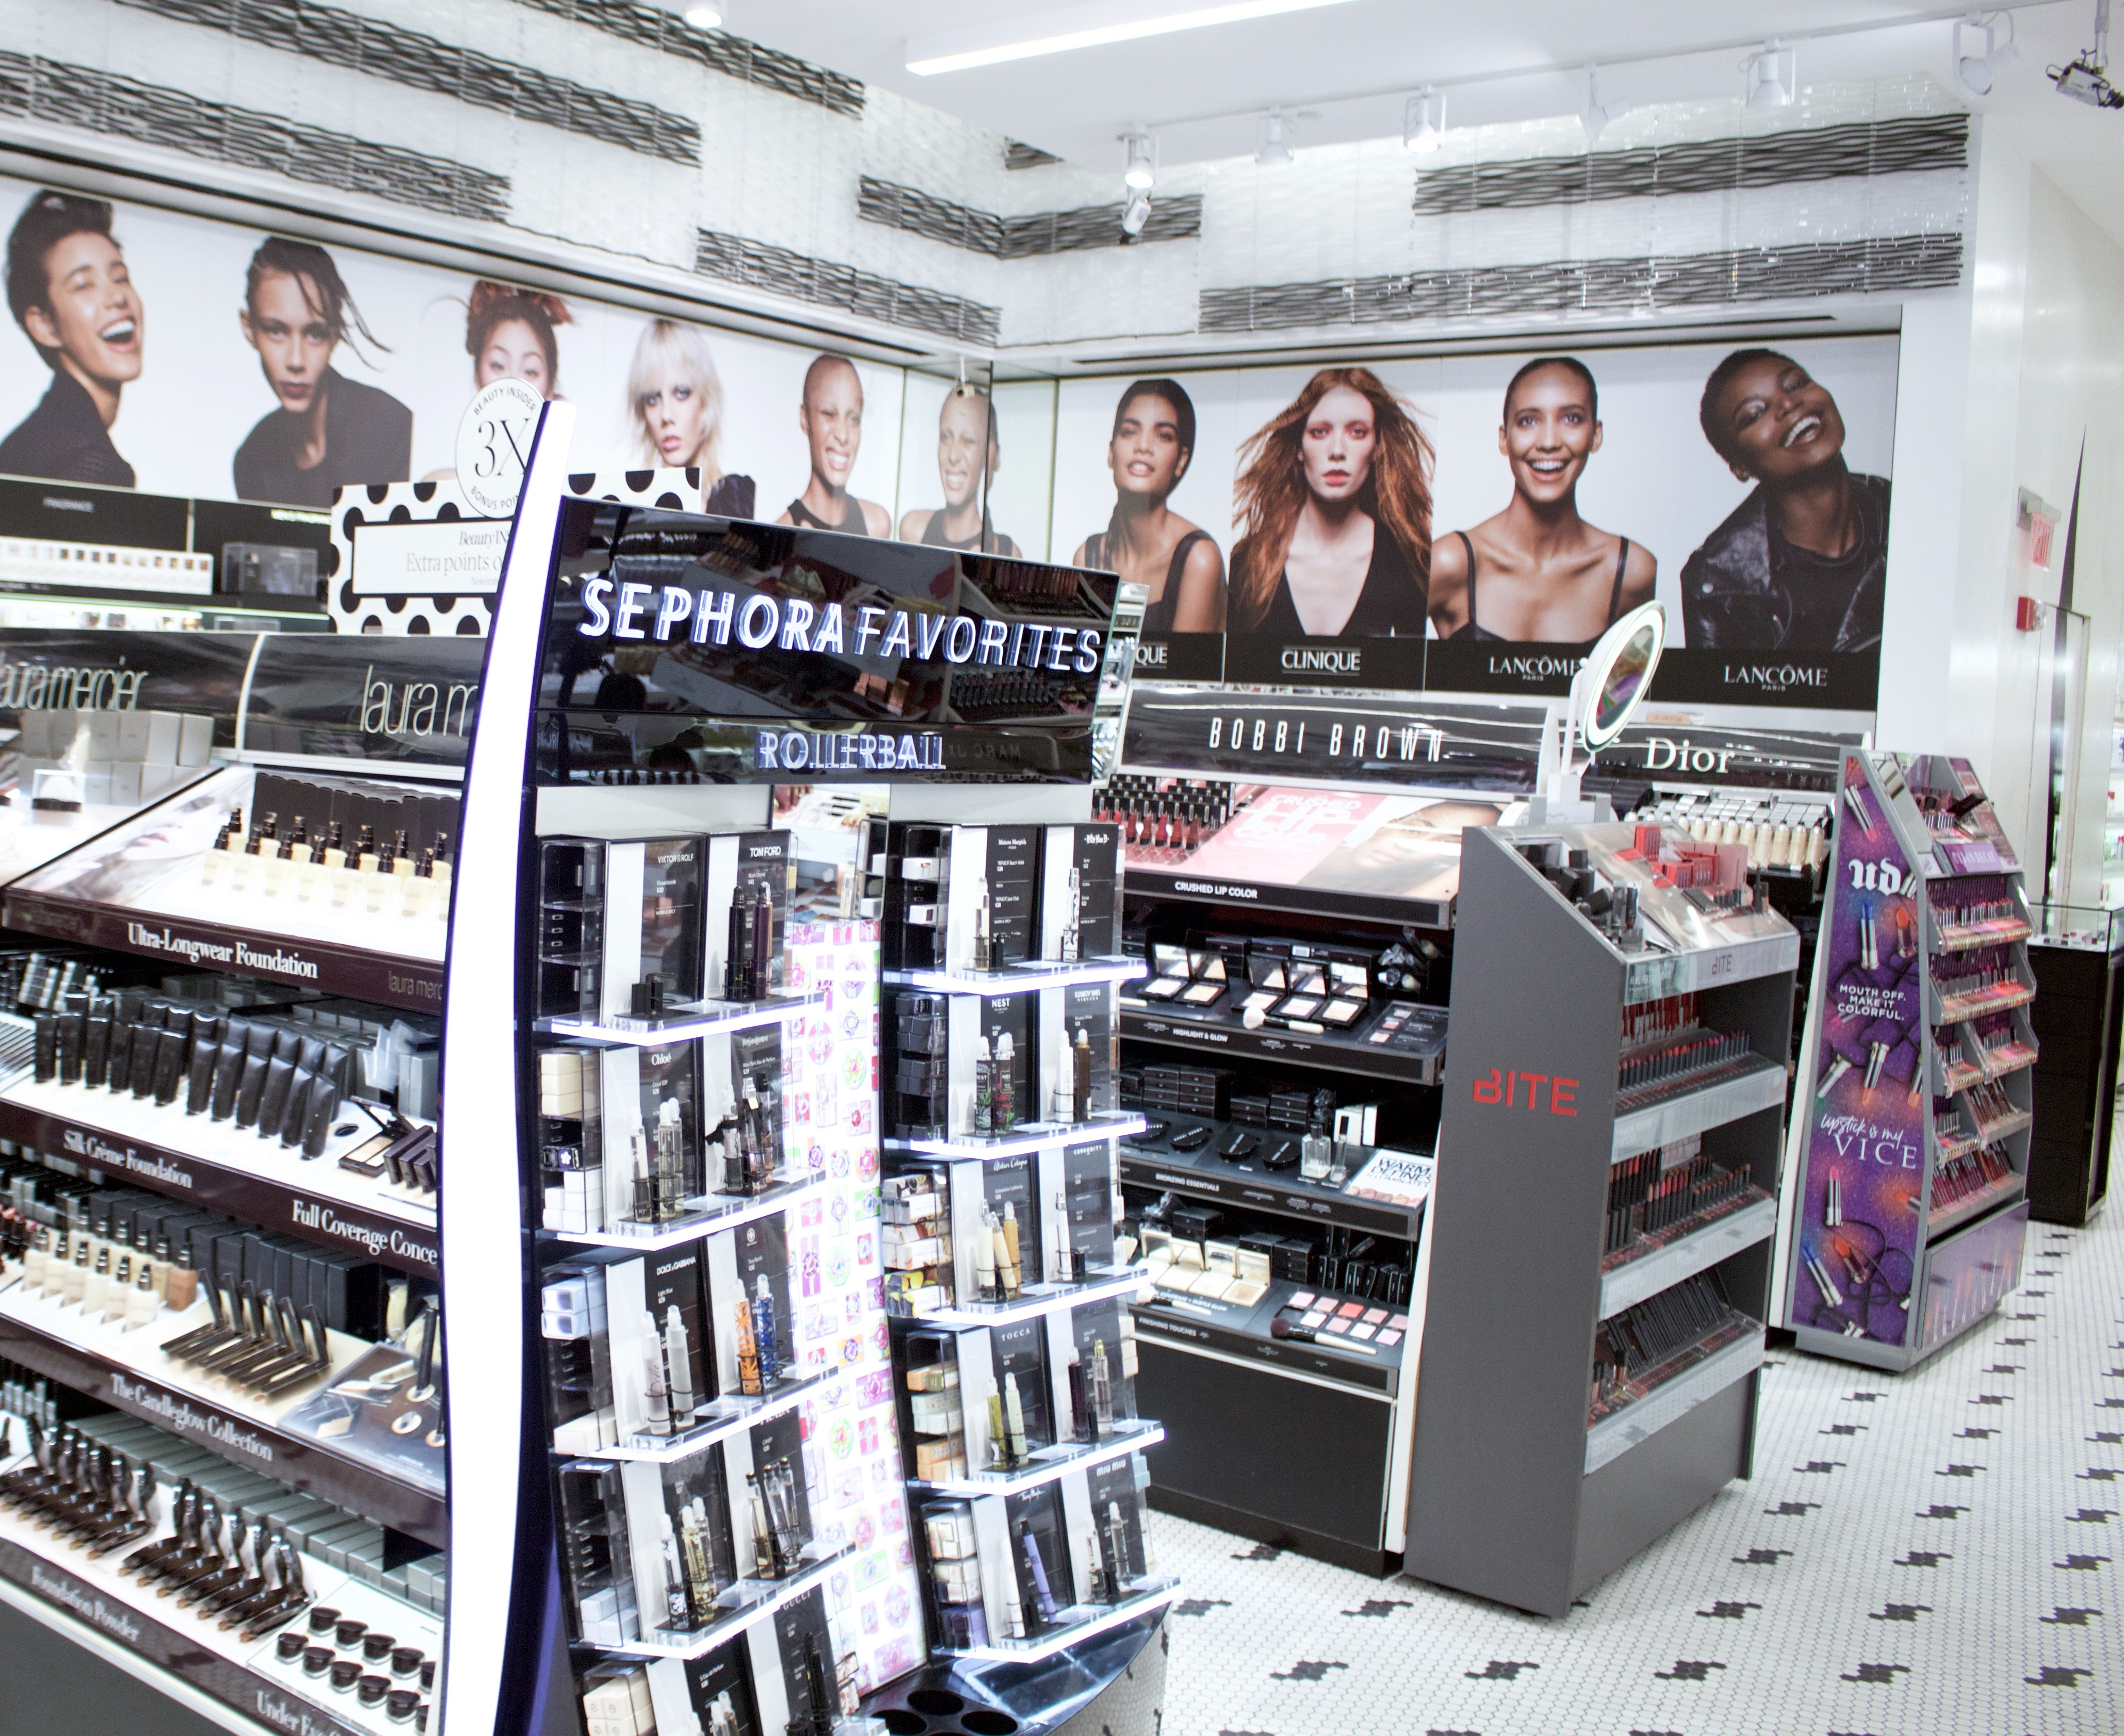 When you go to a Sephora store for a special-event makeover, has the makeup they use touched other people's faces or do they use new applicators, etc?